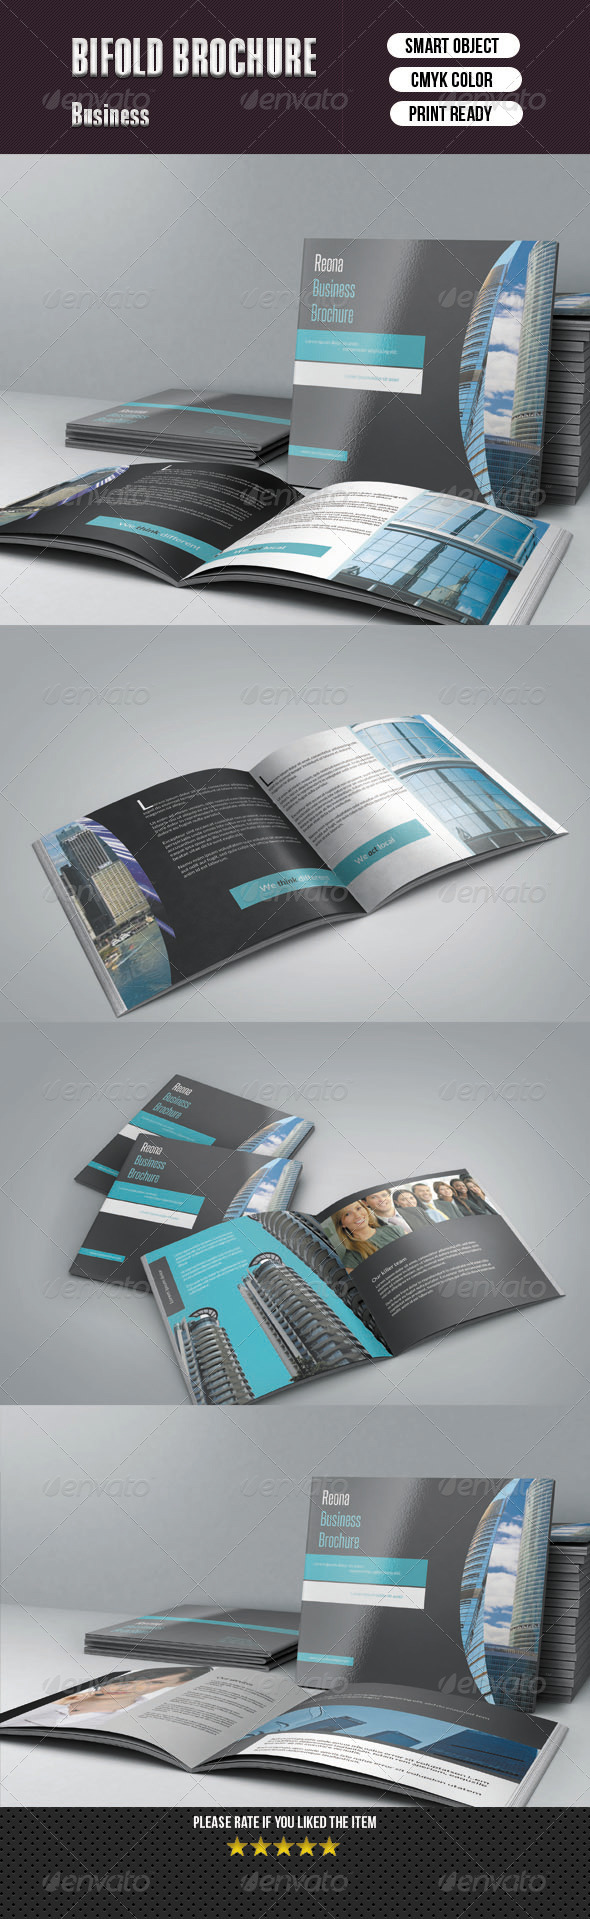 Square Bifold Business Brochure -10 pages - Corporate Brochures